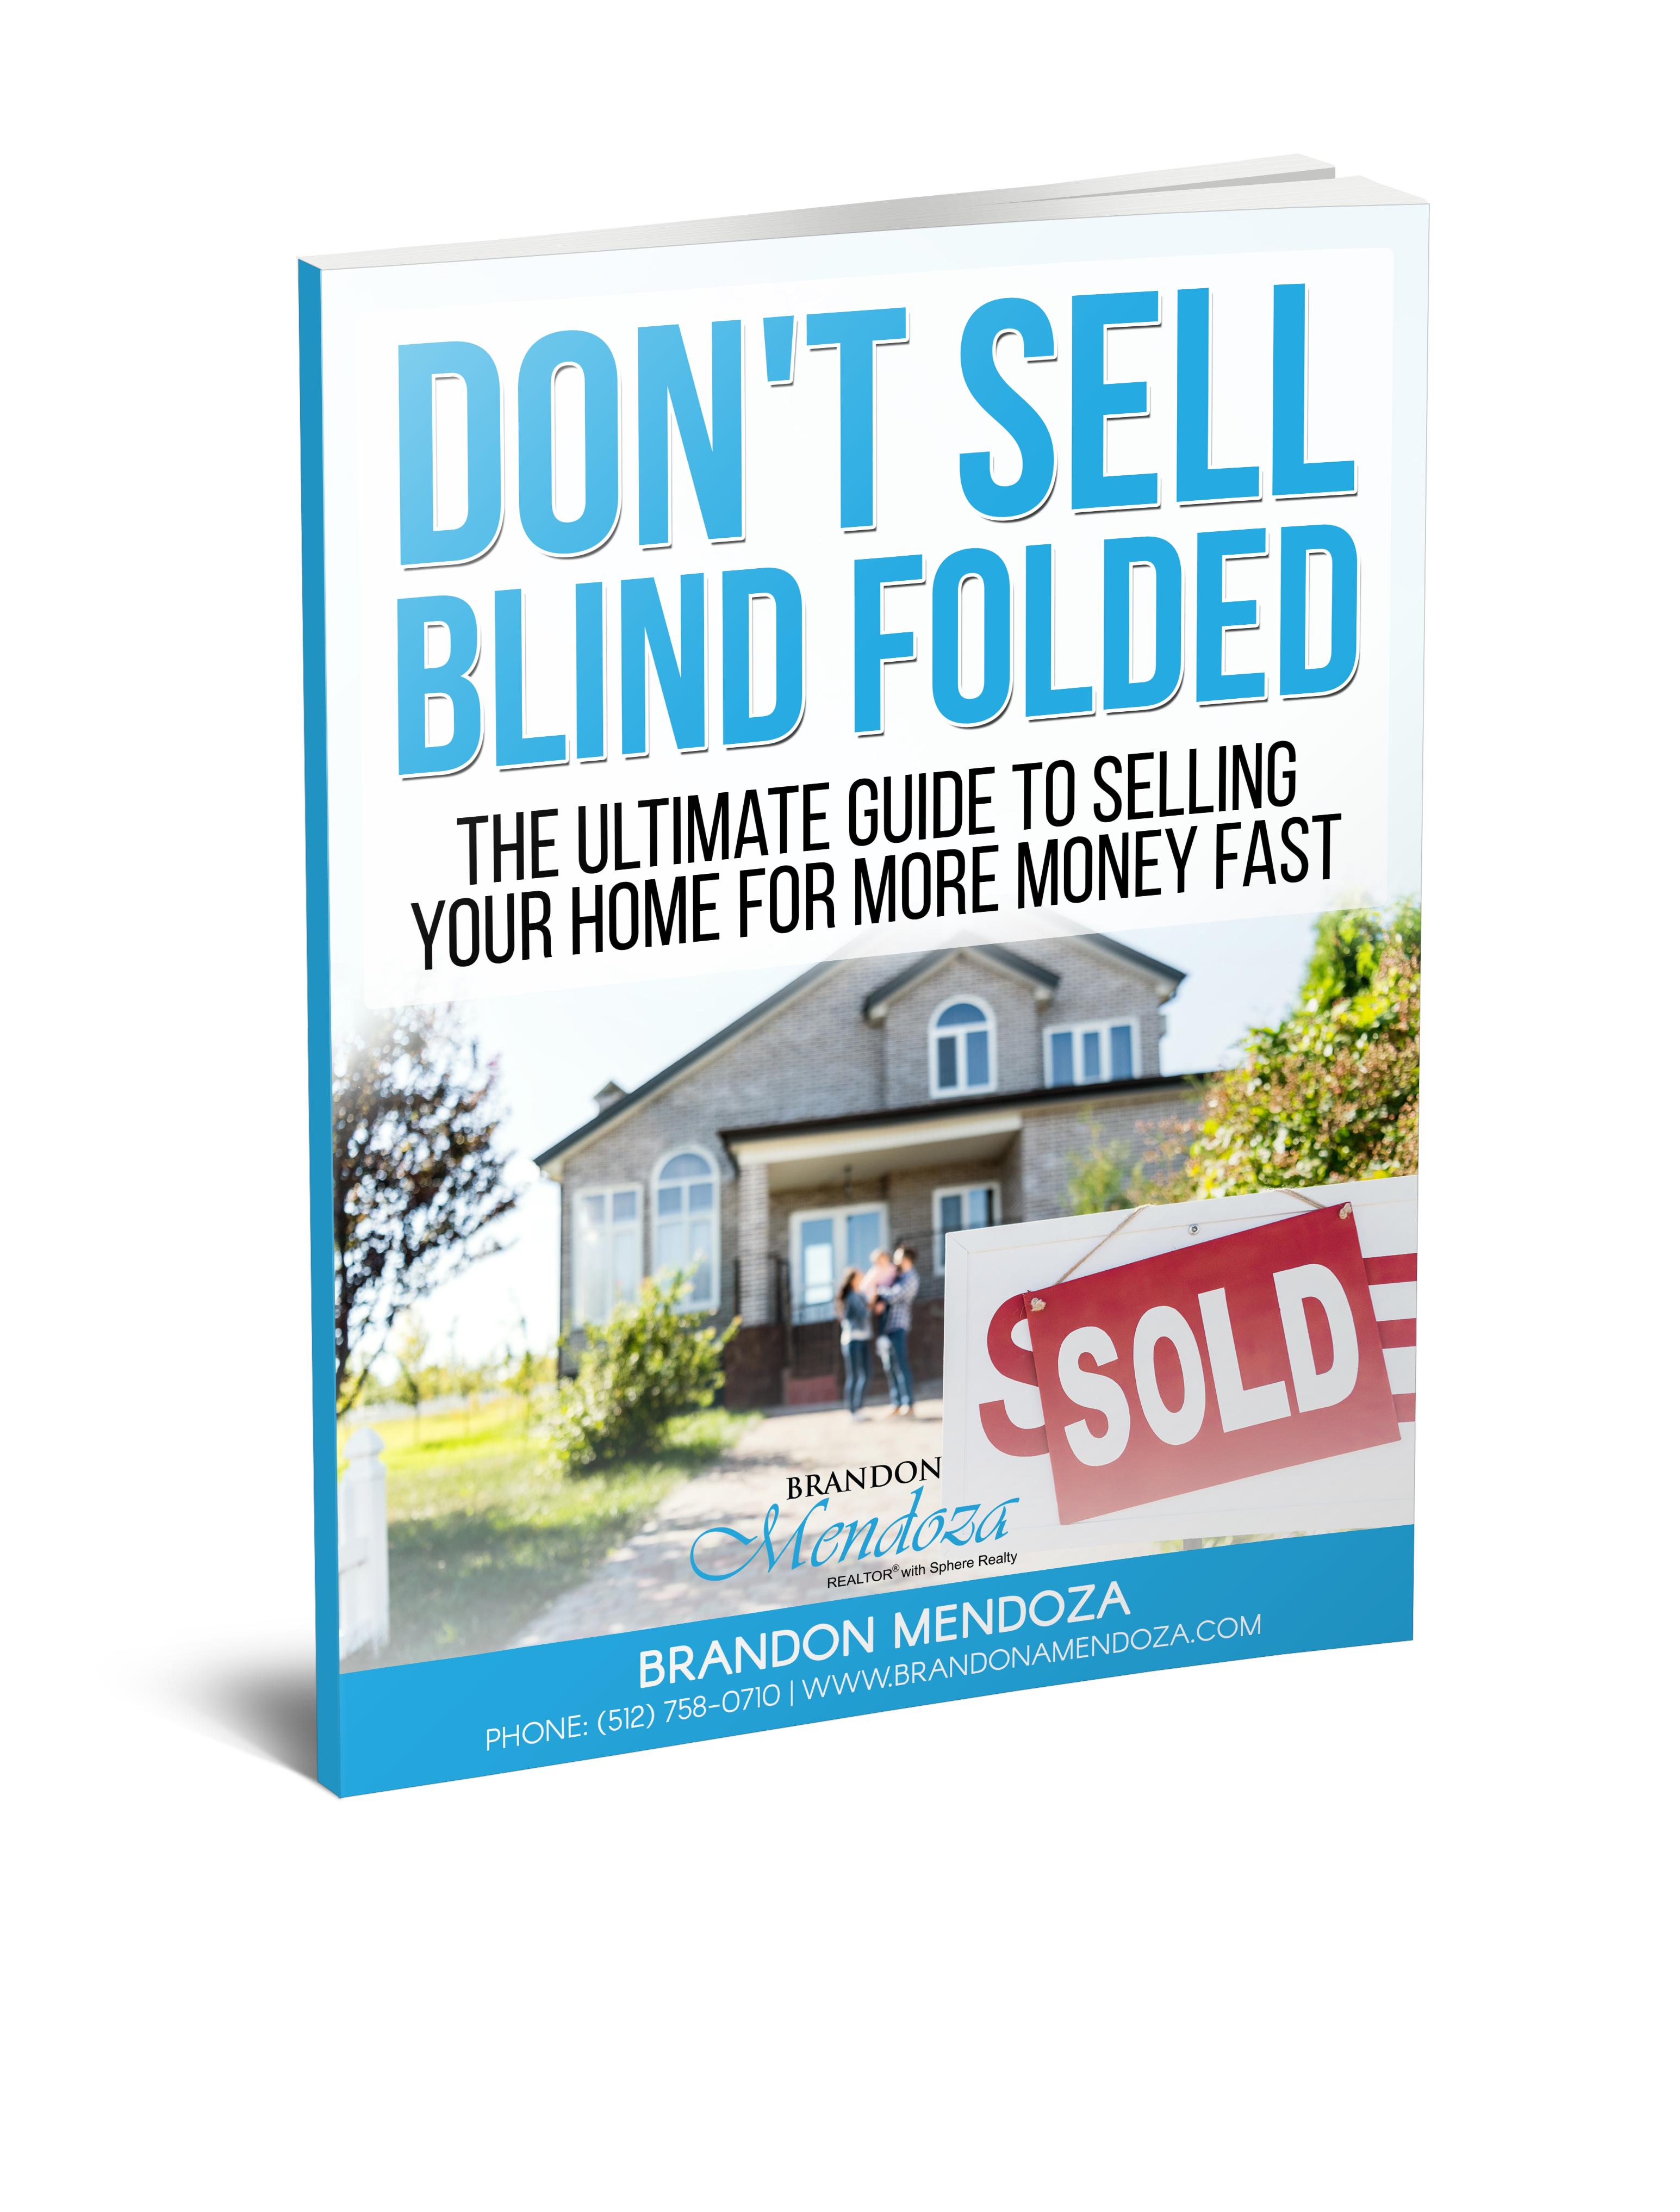 Don't Sell Blind Folded- The Ultimate Guide to Selling Your Home for More Money Fast